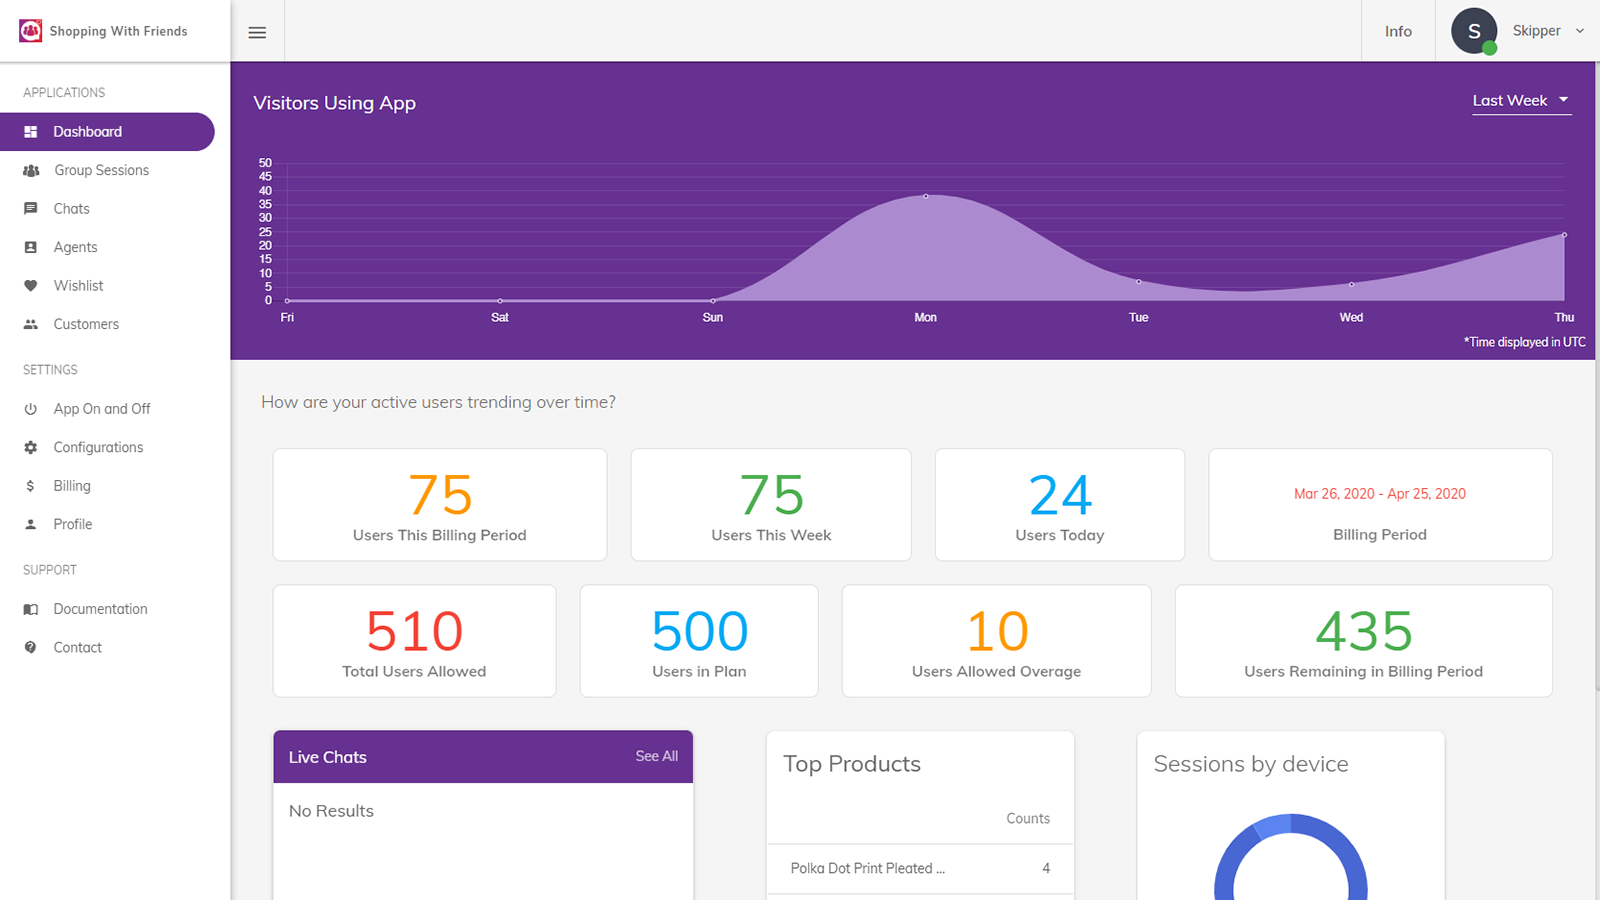 Dashboard - quick look at the app and app use